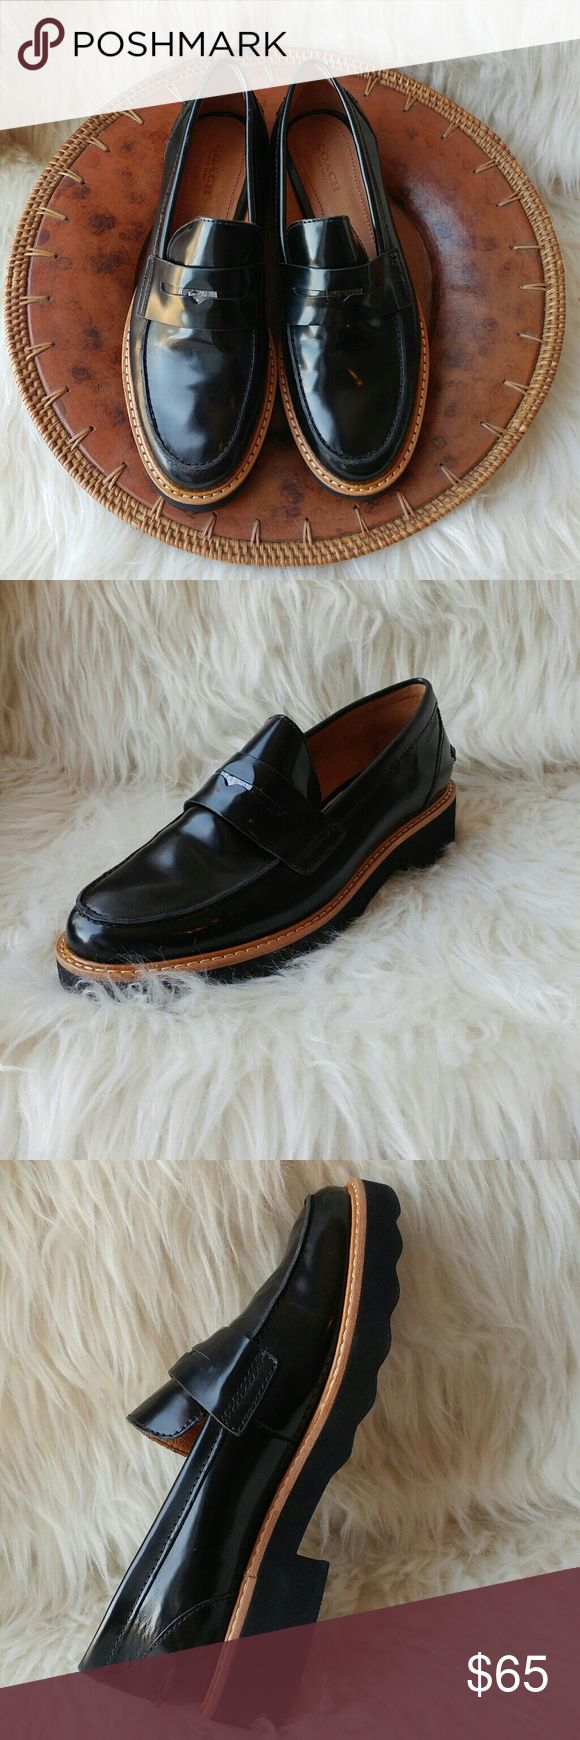 """Coach Indie loafer Excellent pre owned condition leather loafer by Coach Black with brown trim 1"""" heel Light creasing on heel from use, not visible when worn Size 5.5 fits true to size  Coach logo coin detail Coach Shoes Flats & Loafers"""